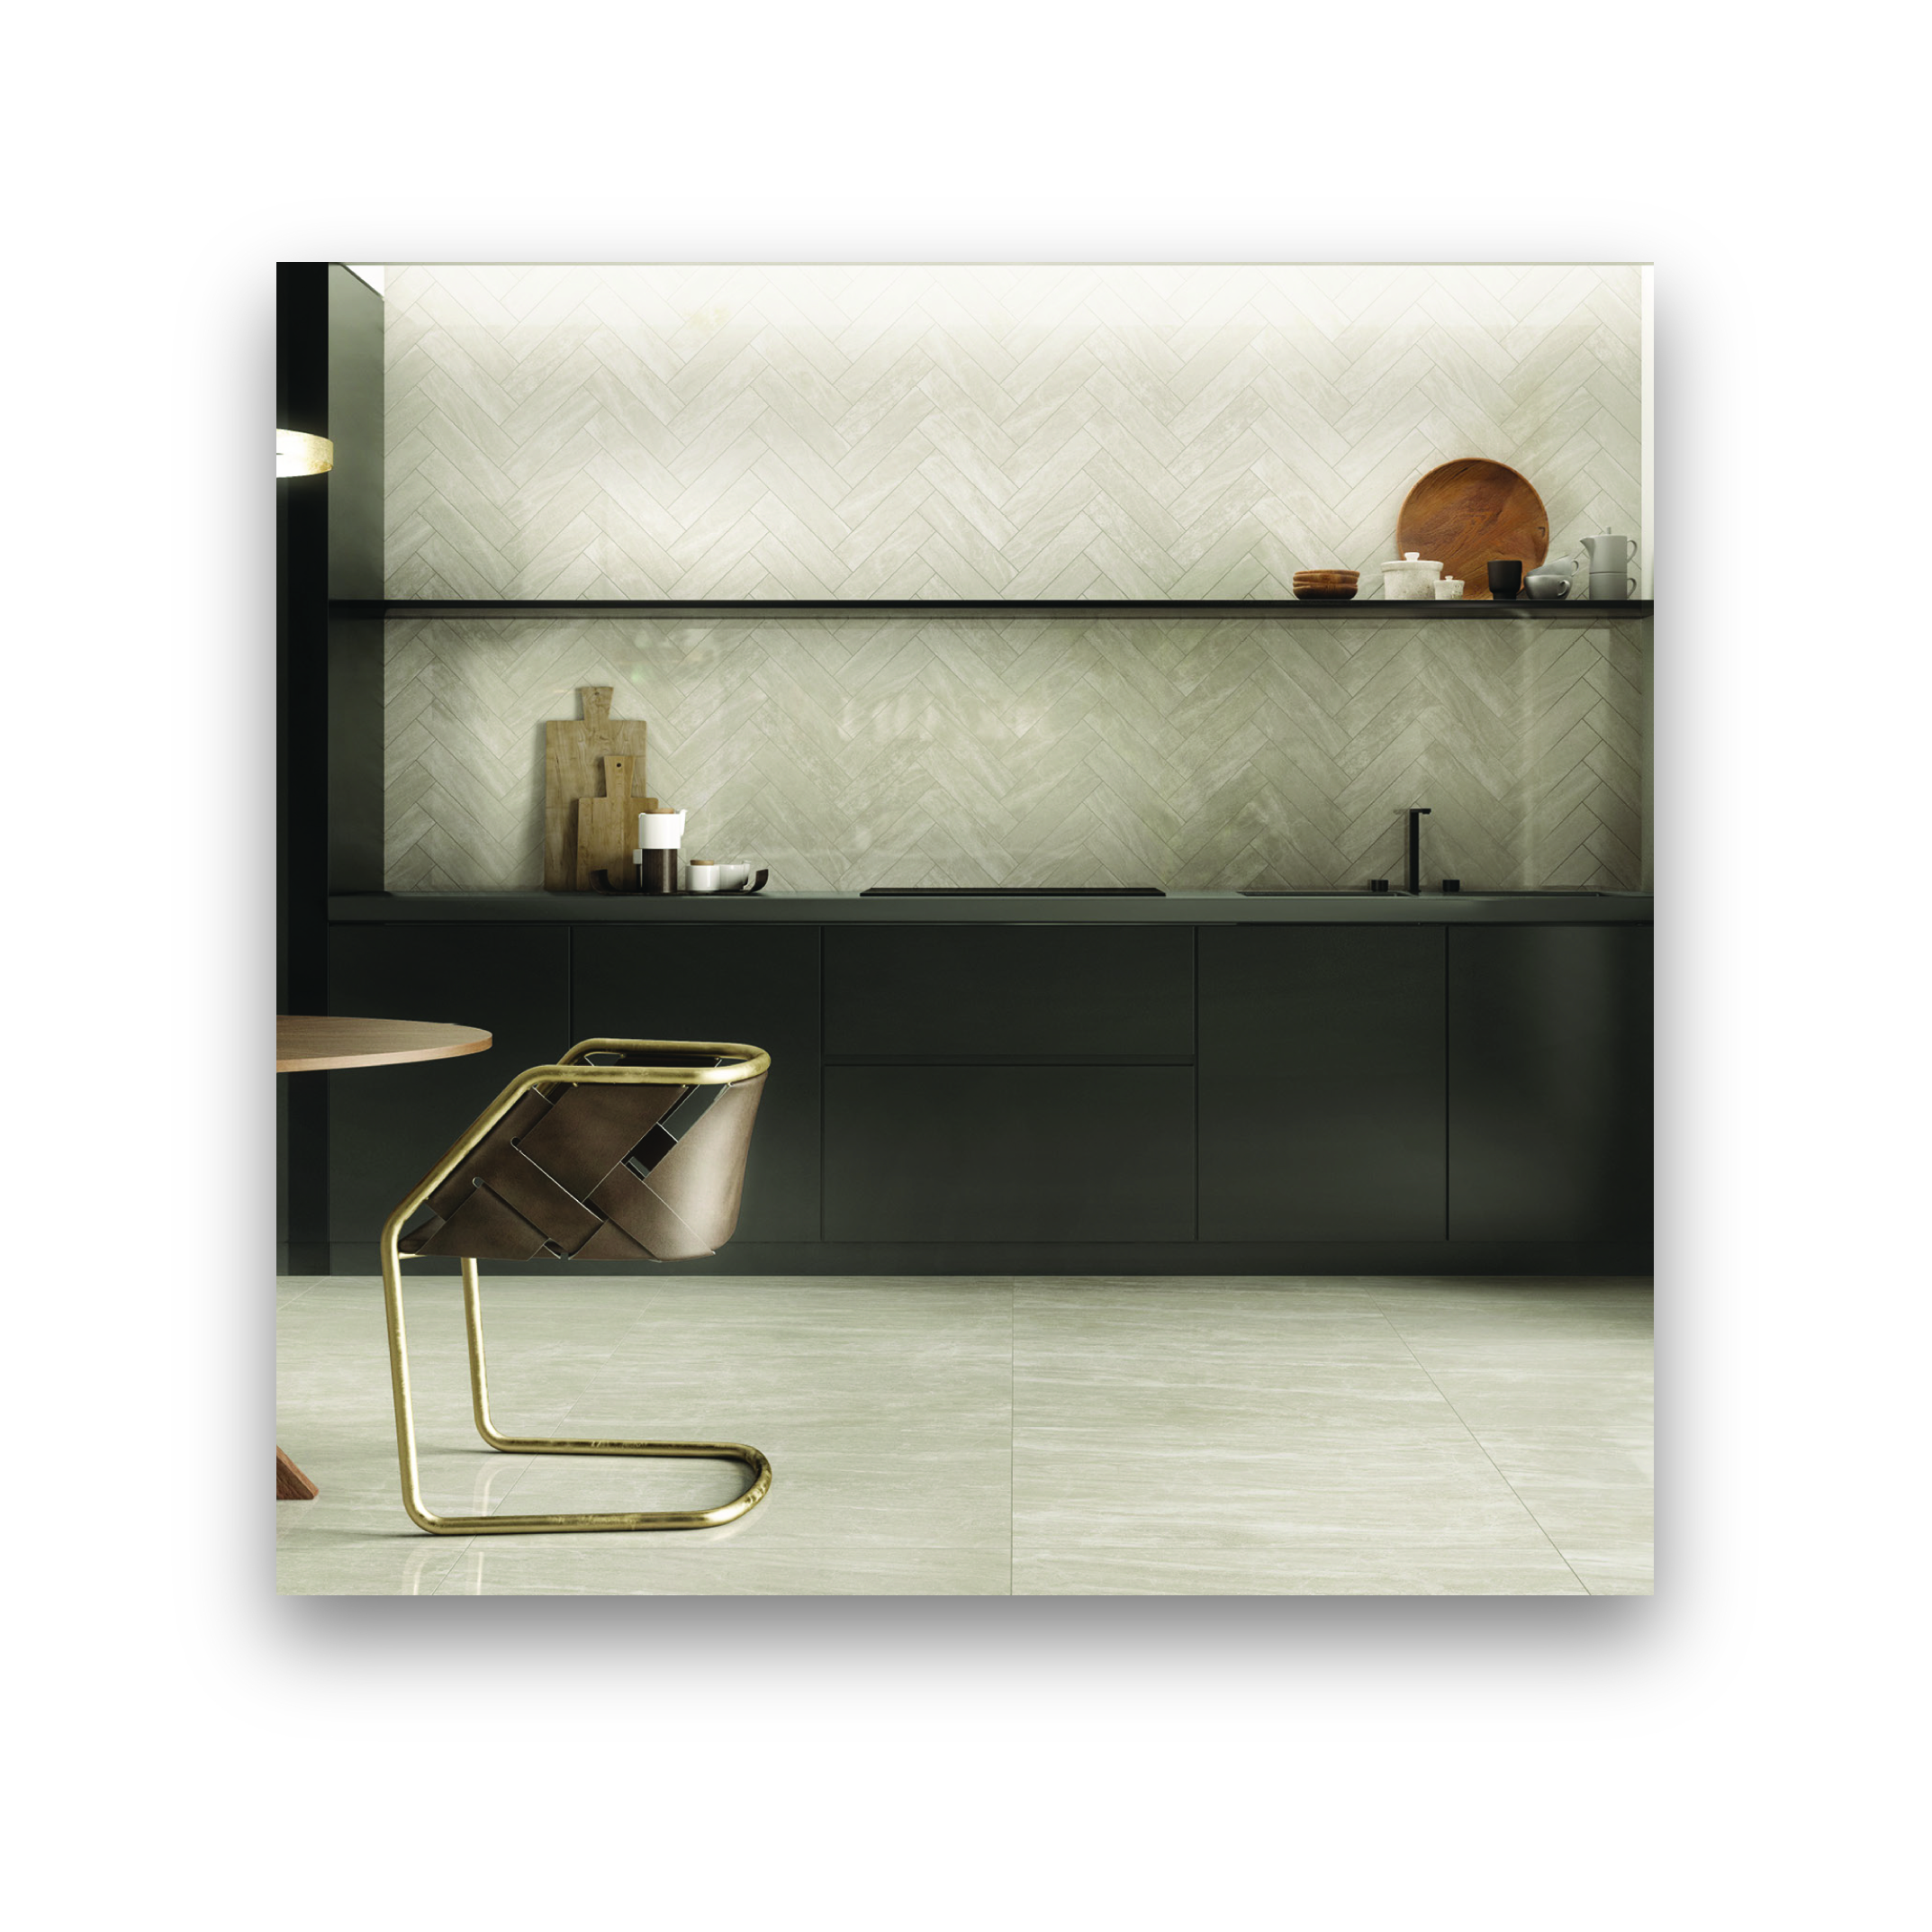 All Natural Stone Stock Material, All Natural Stone Stock Porcelain, Cosmic